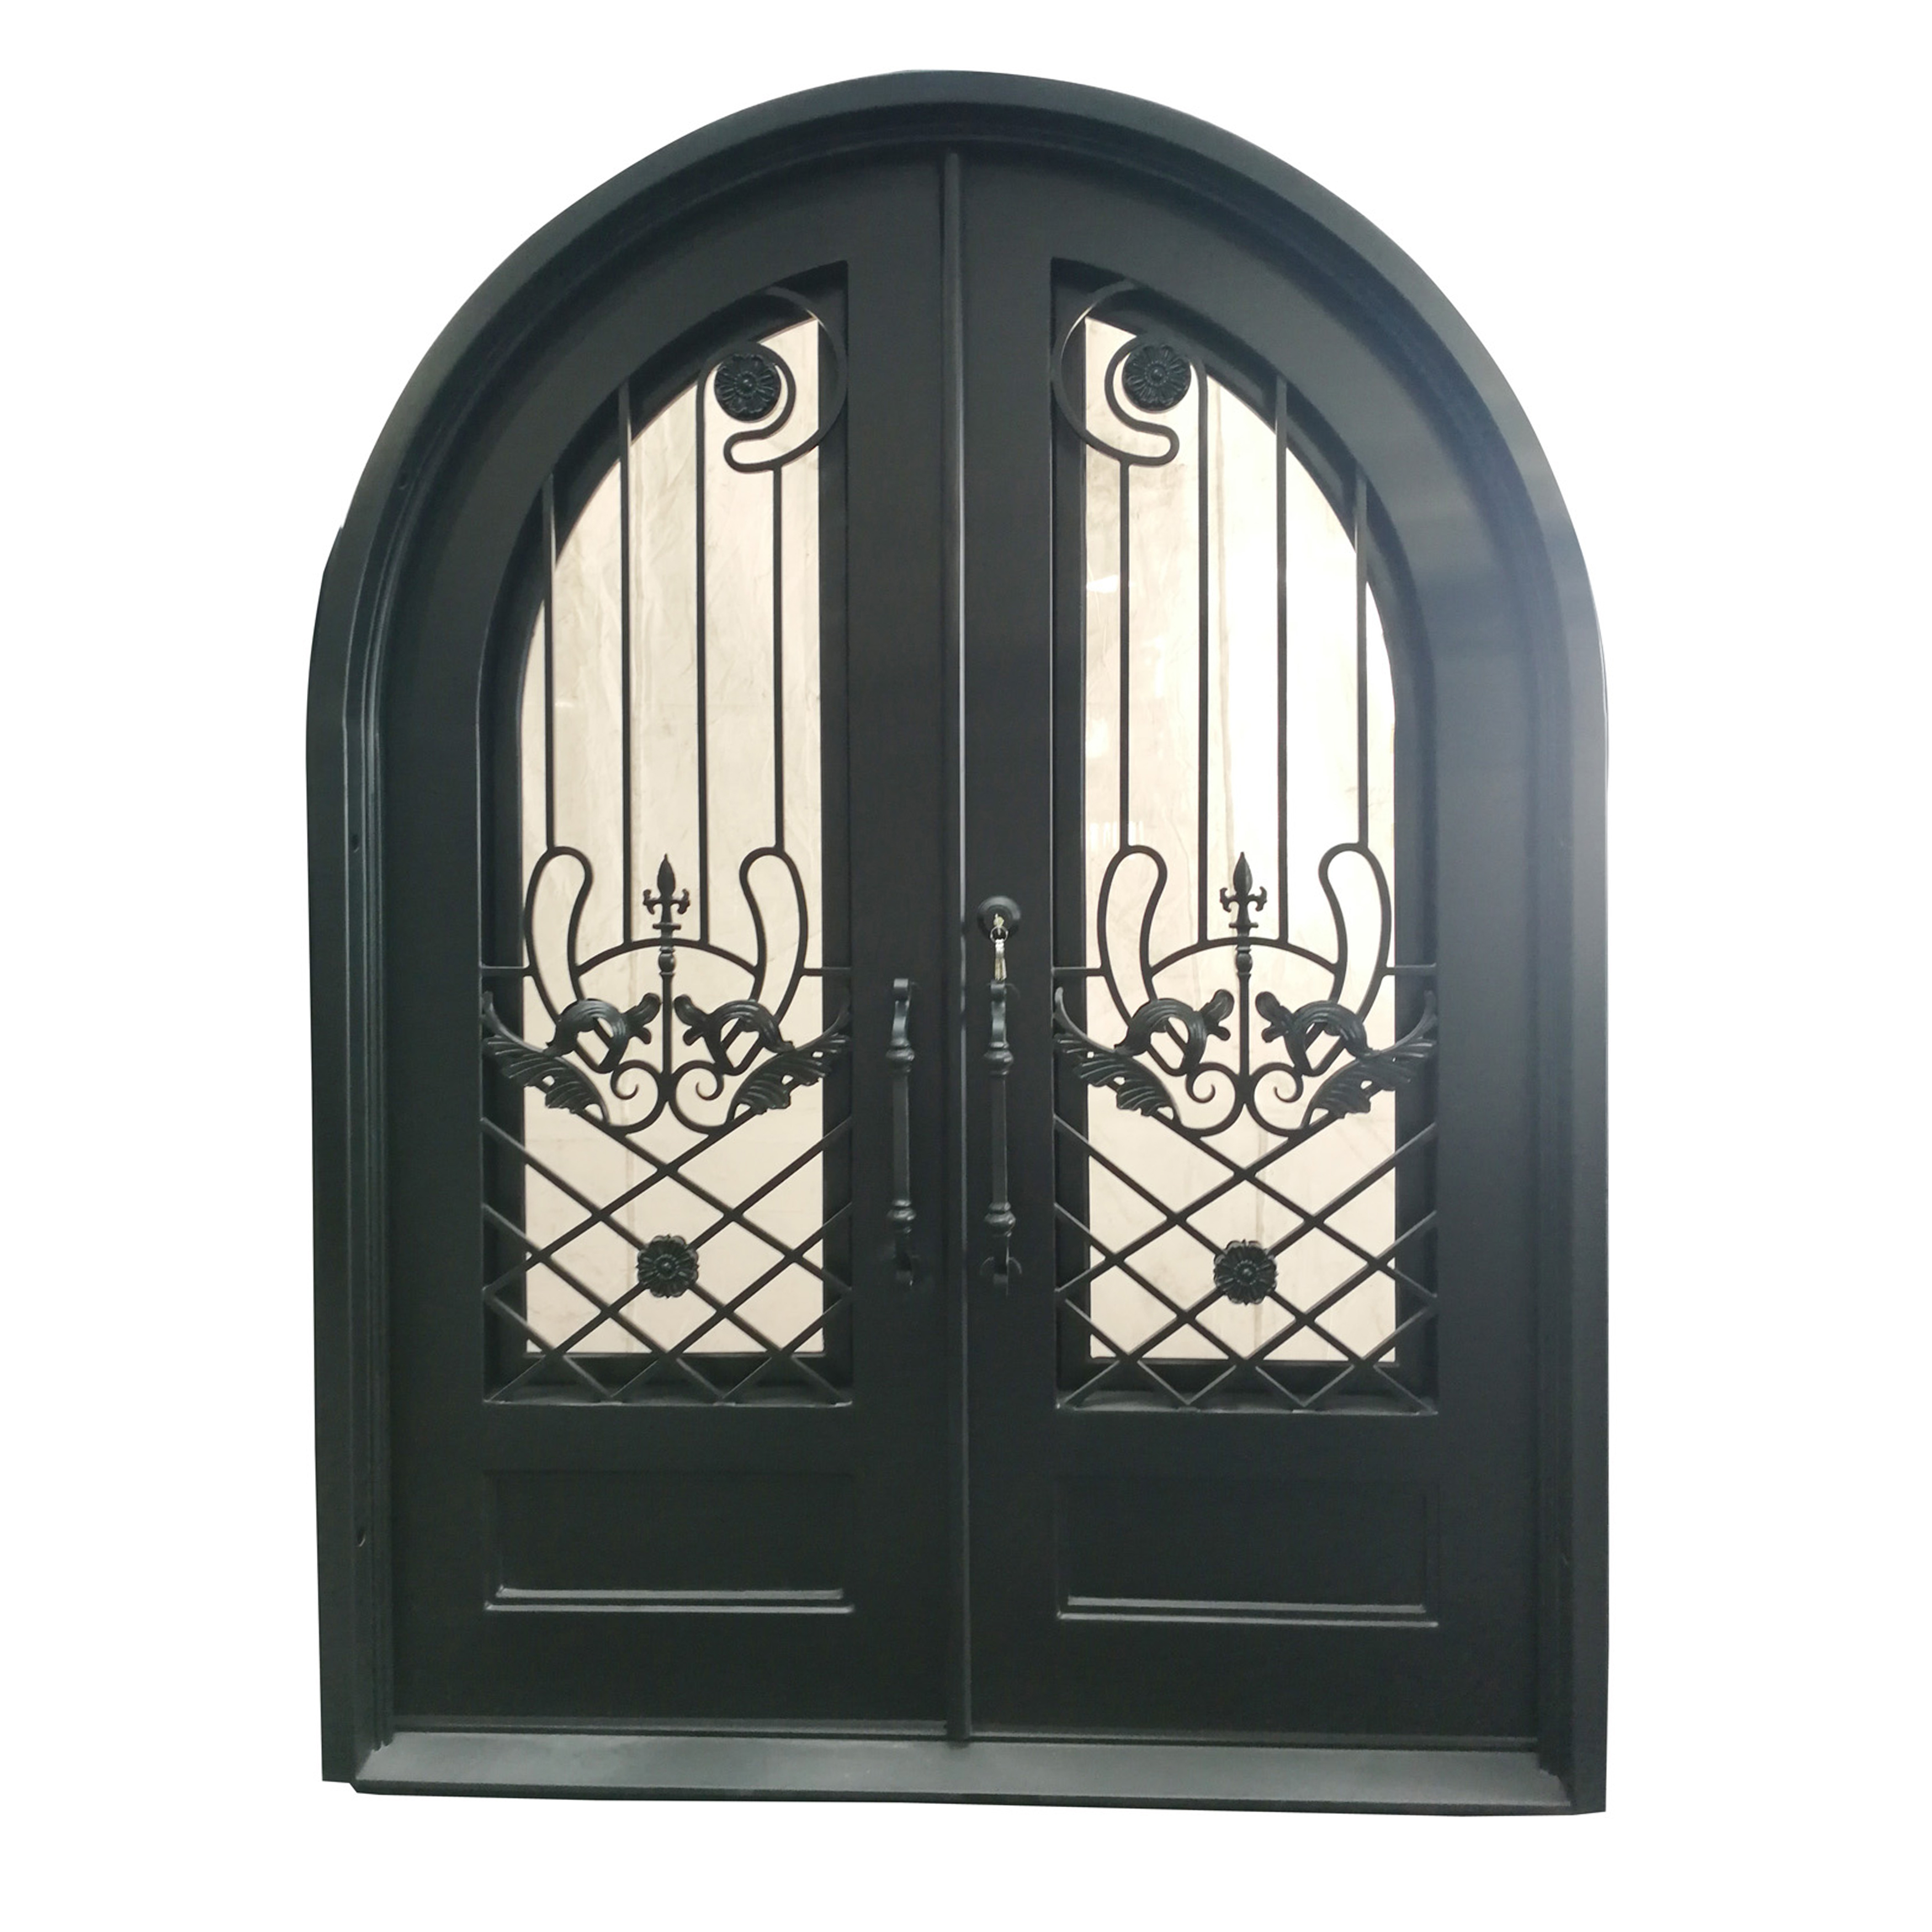 Iron Dual Door Ornamental Design with Arched Frame and Threshold - 96 x 108 x 6 Inches - Matte Black